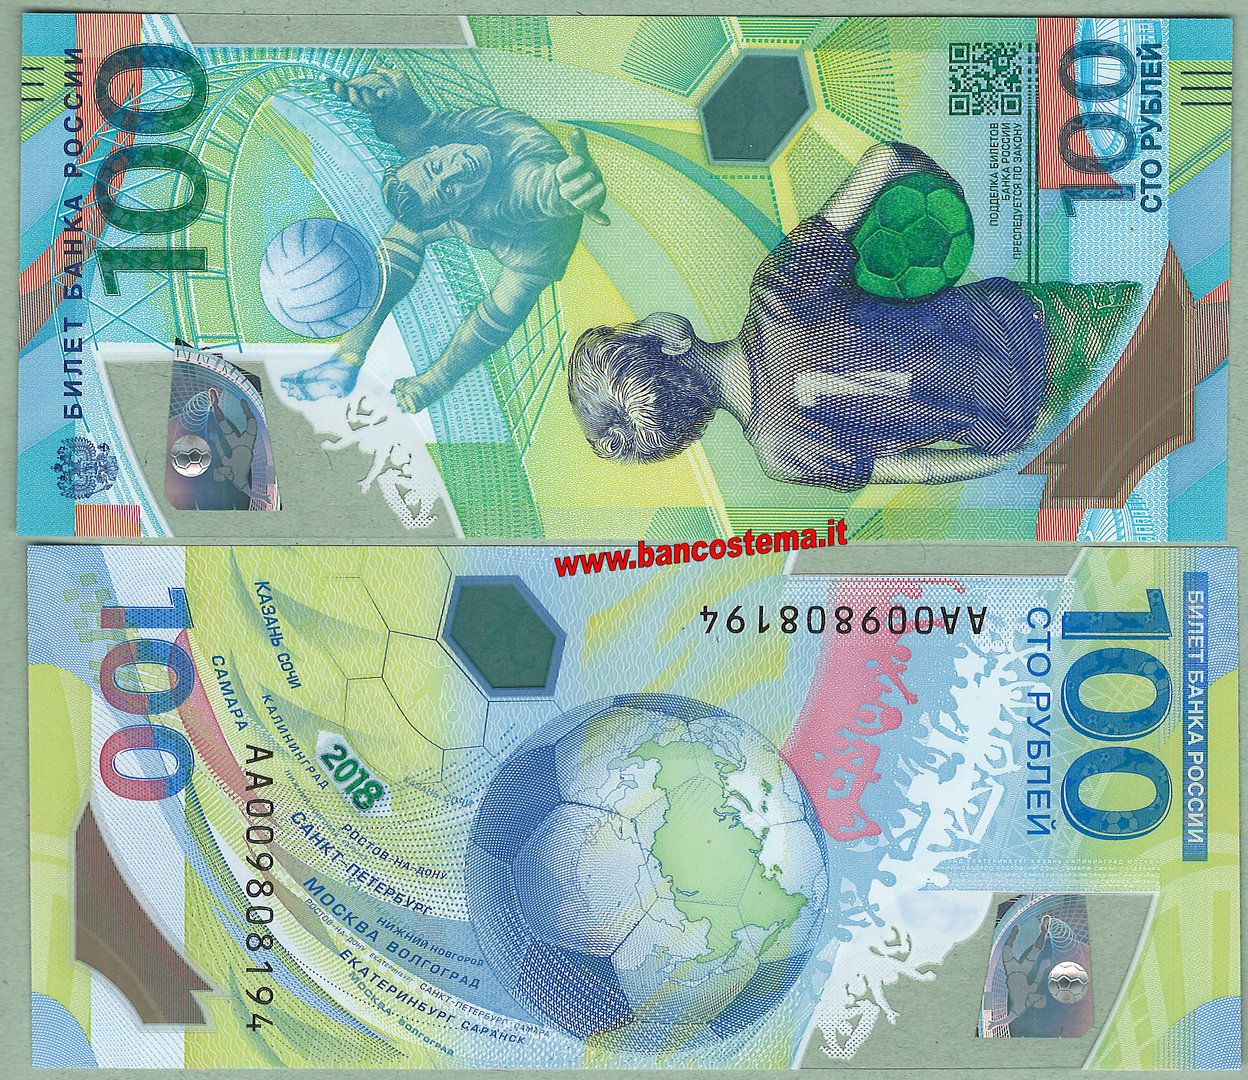 Russia 2018 FIFA World Cup in Russia 2018 polymer banknote UNC 100 rubles